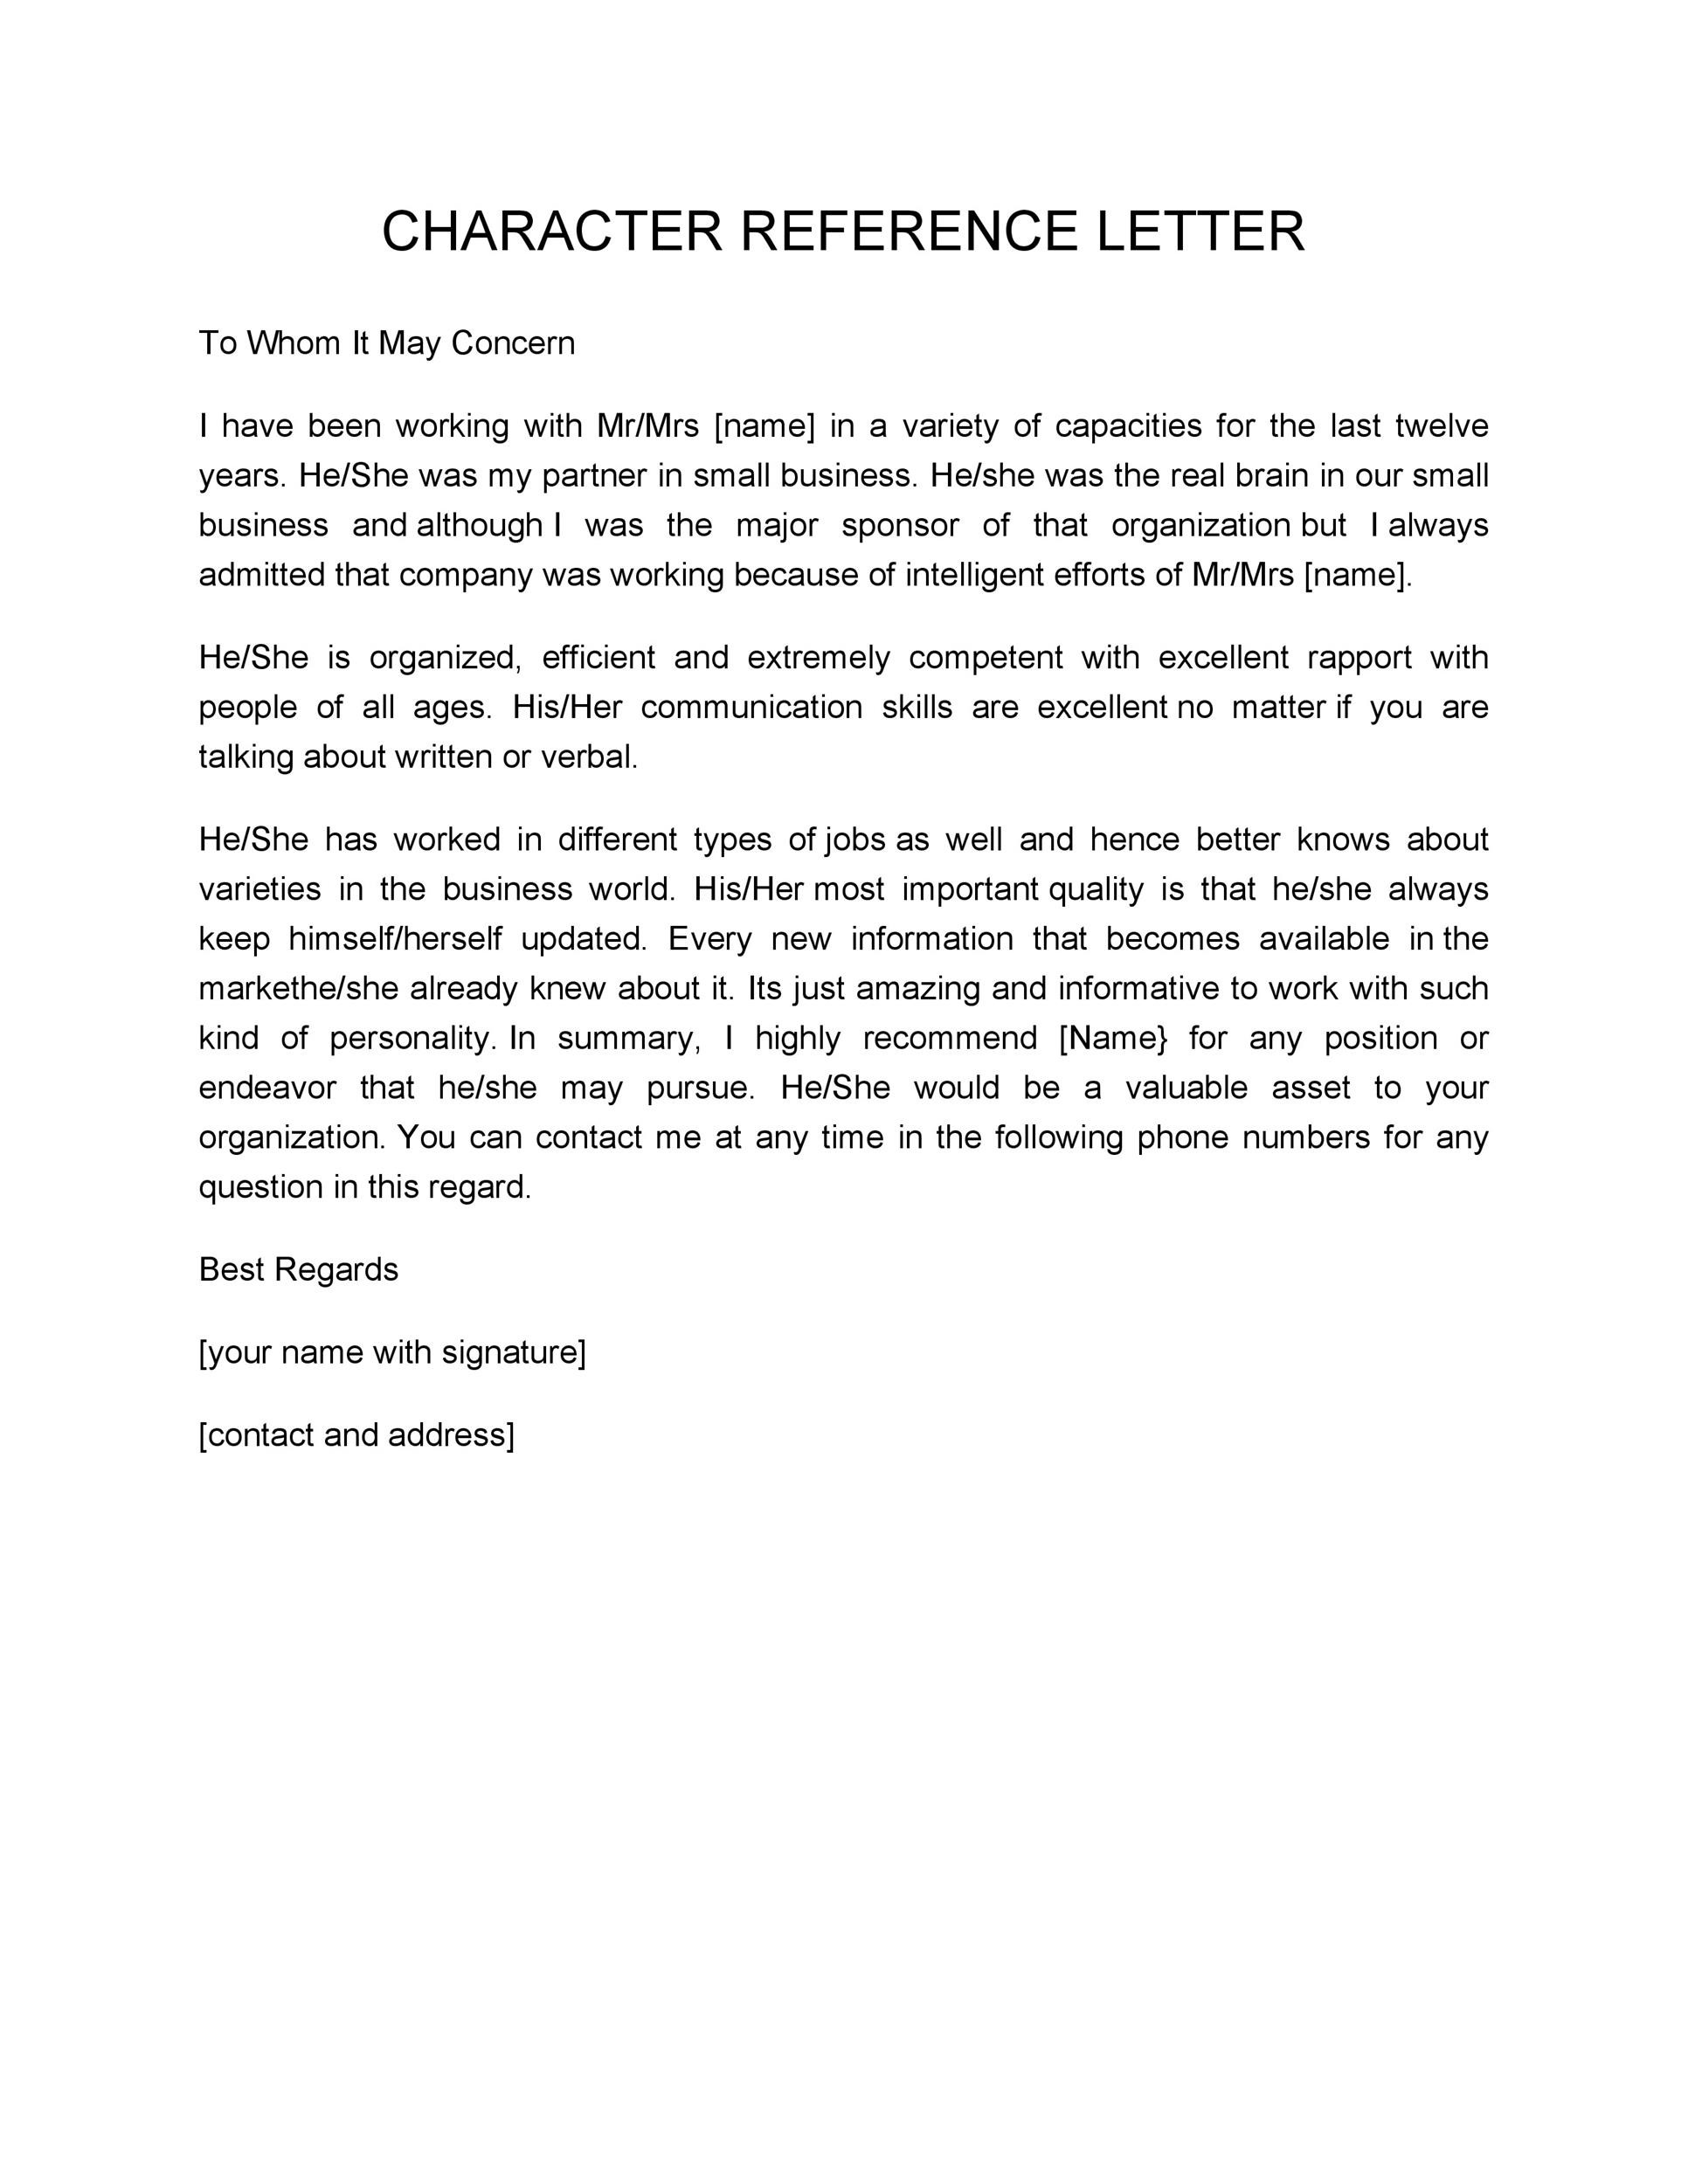 Letter of recommendation for character reference selol ink letter of recommendation for character reference altavistaventures Images